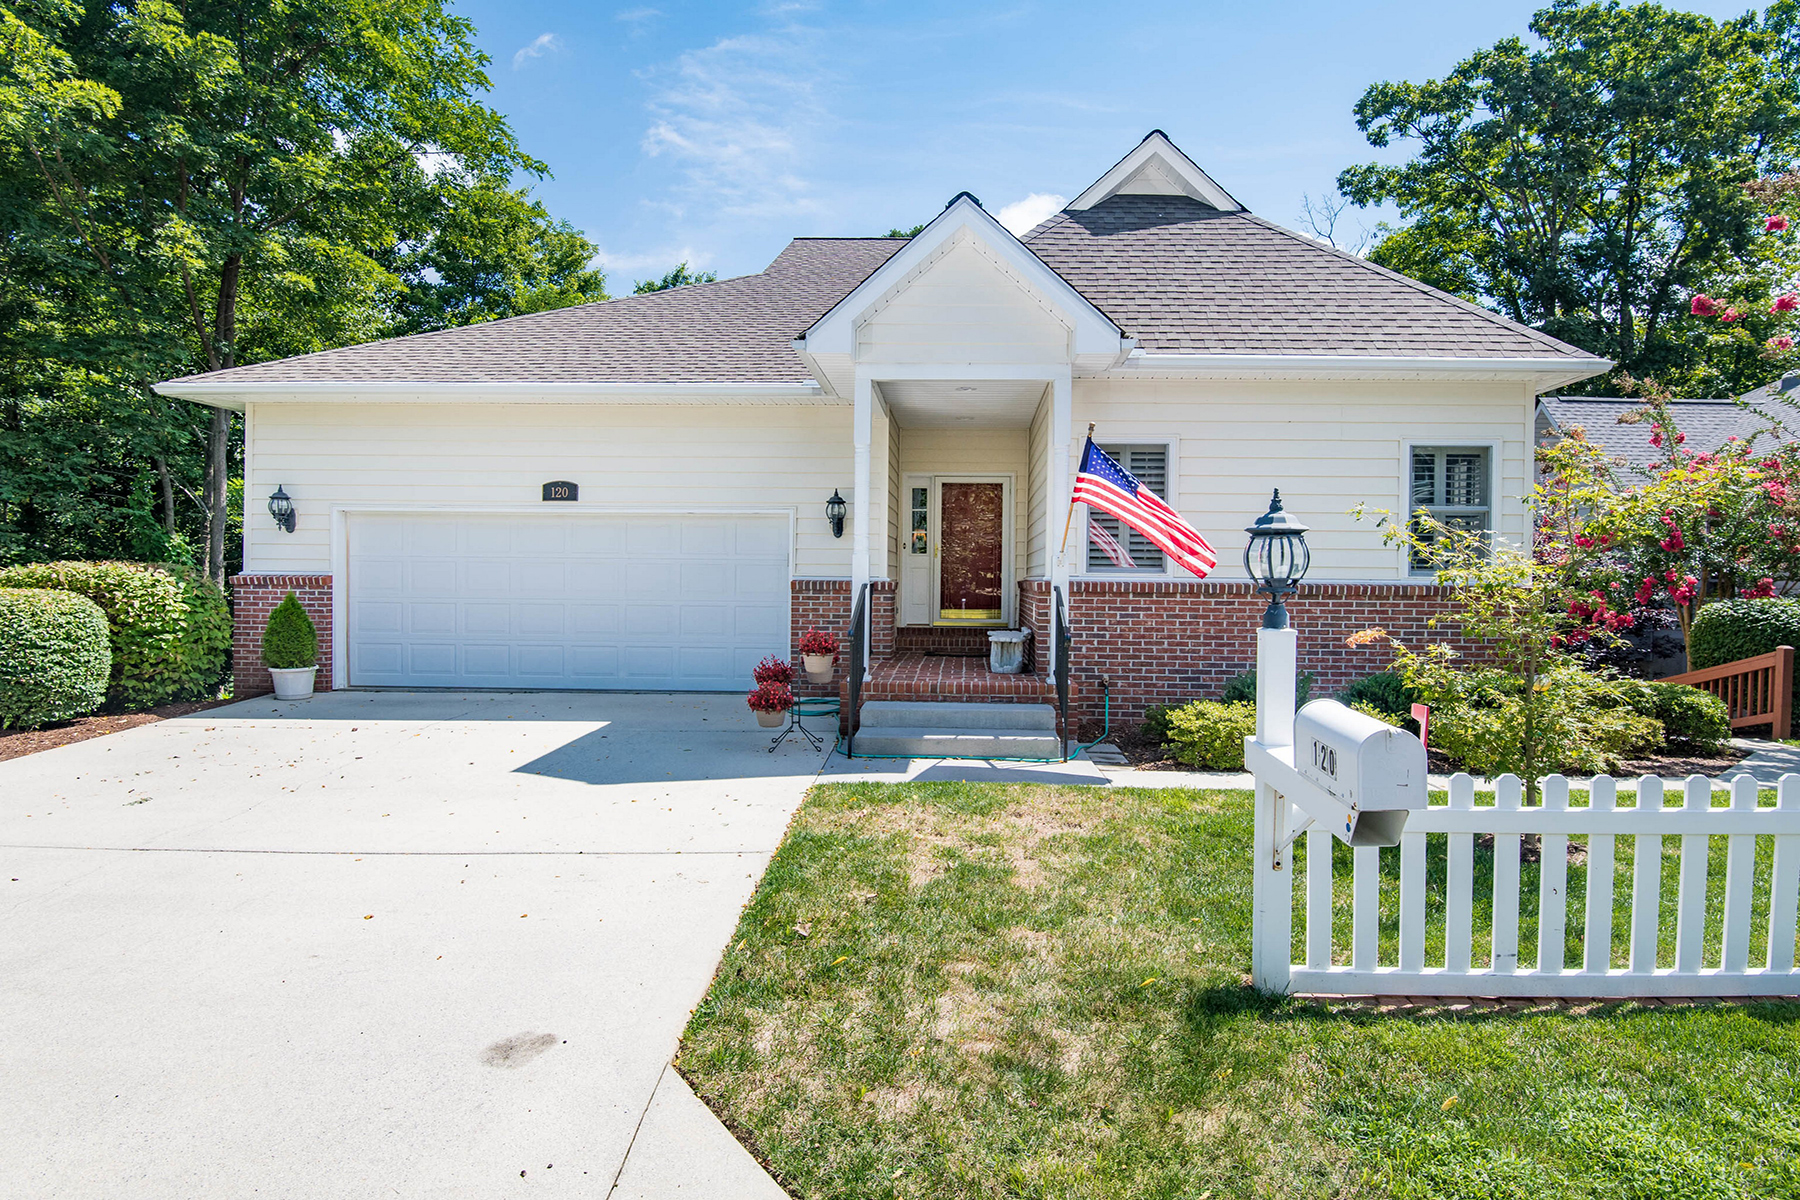 Single Family Home for Active at CARRIAGE PARK 120 Carriage Summitt Way Hendersonville, North Carolina 28791 United States